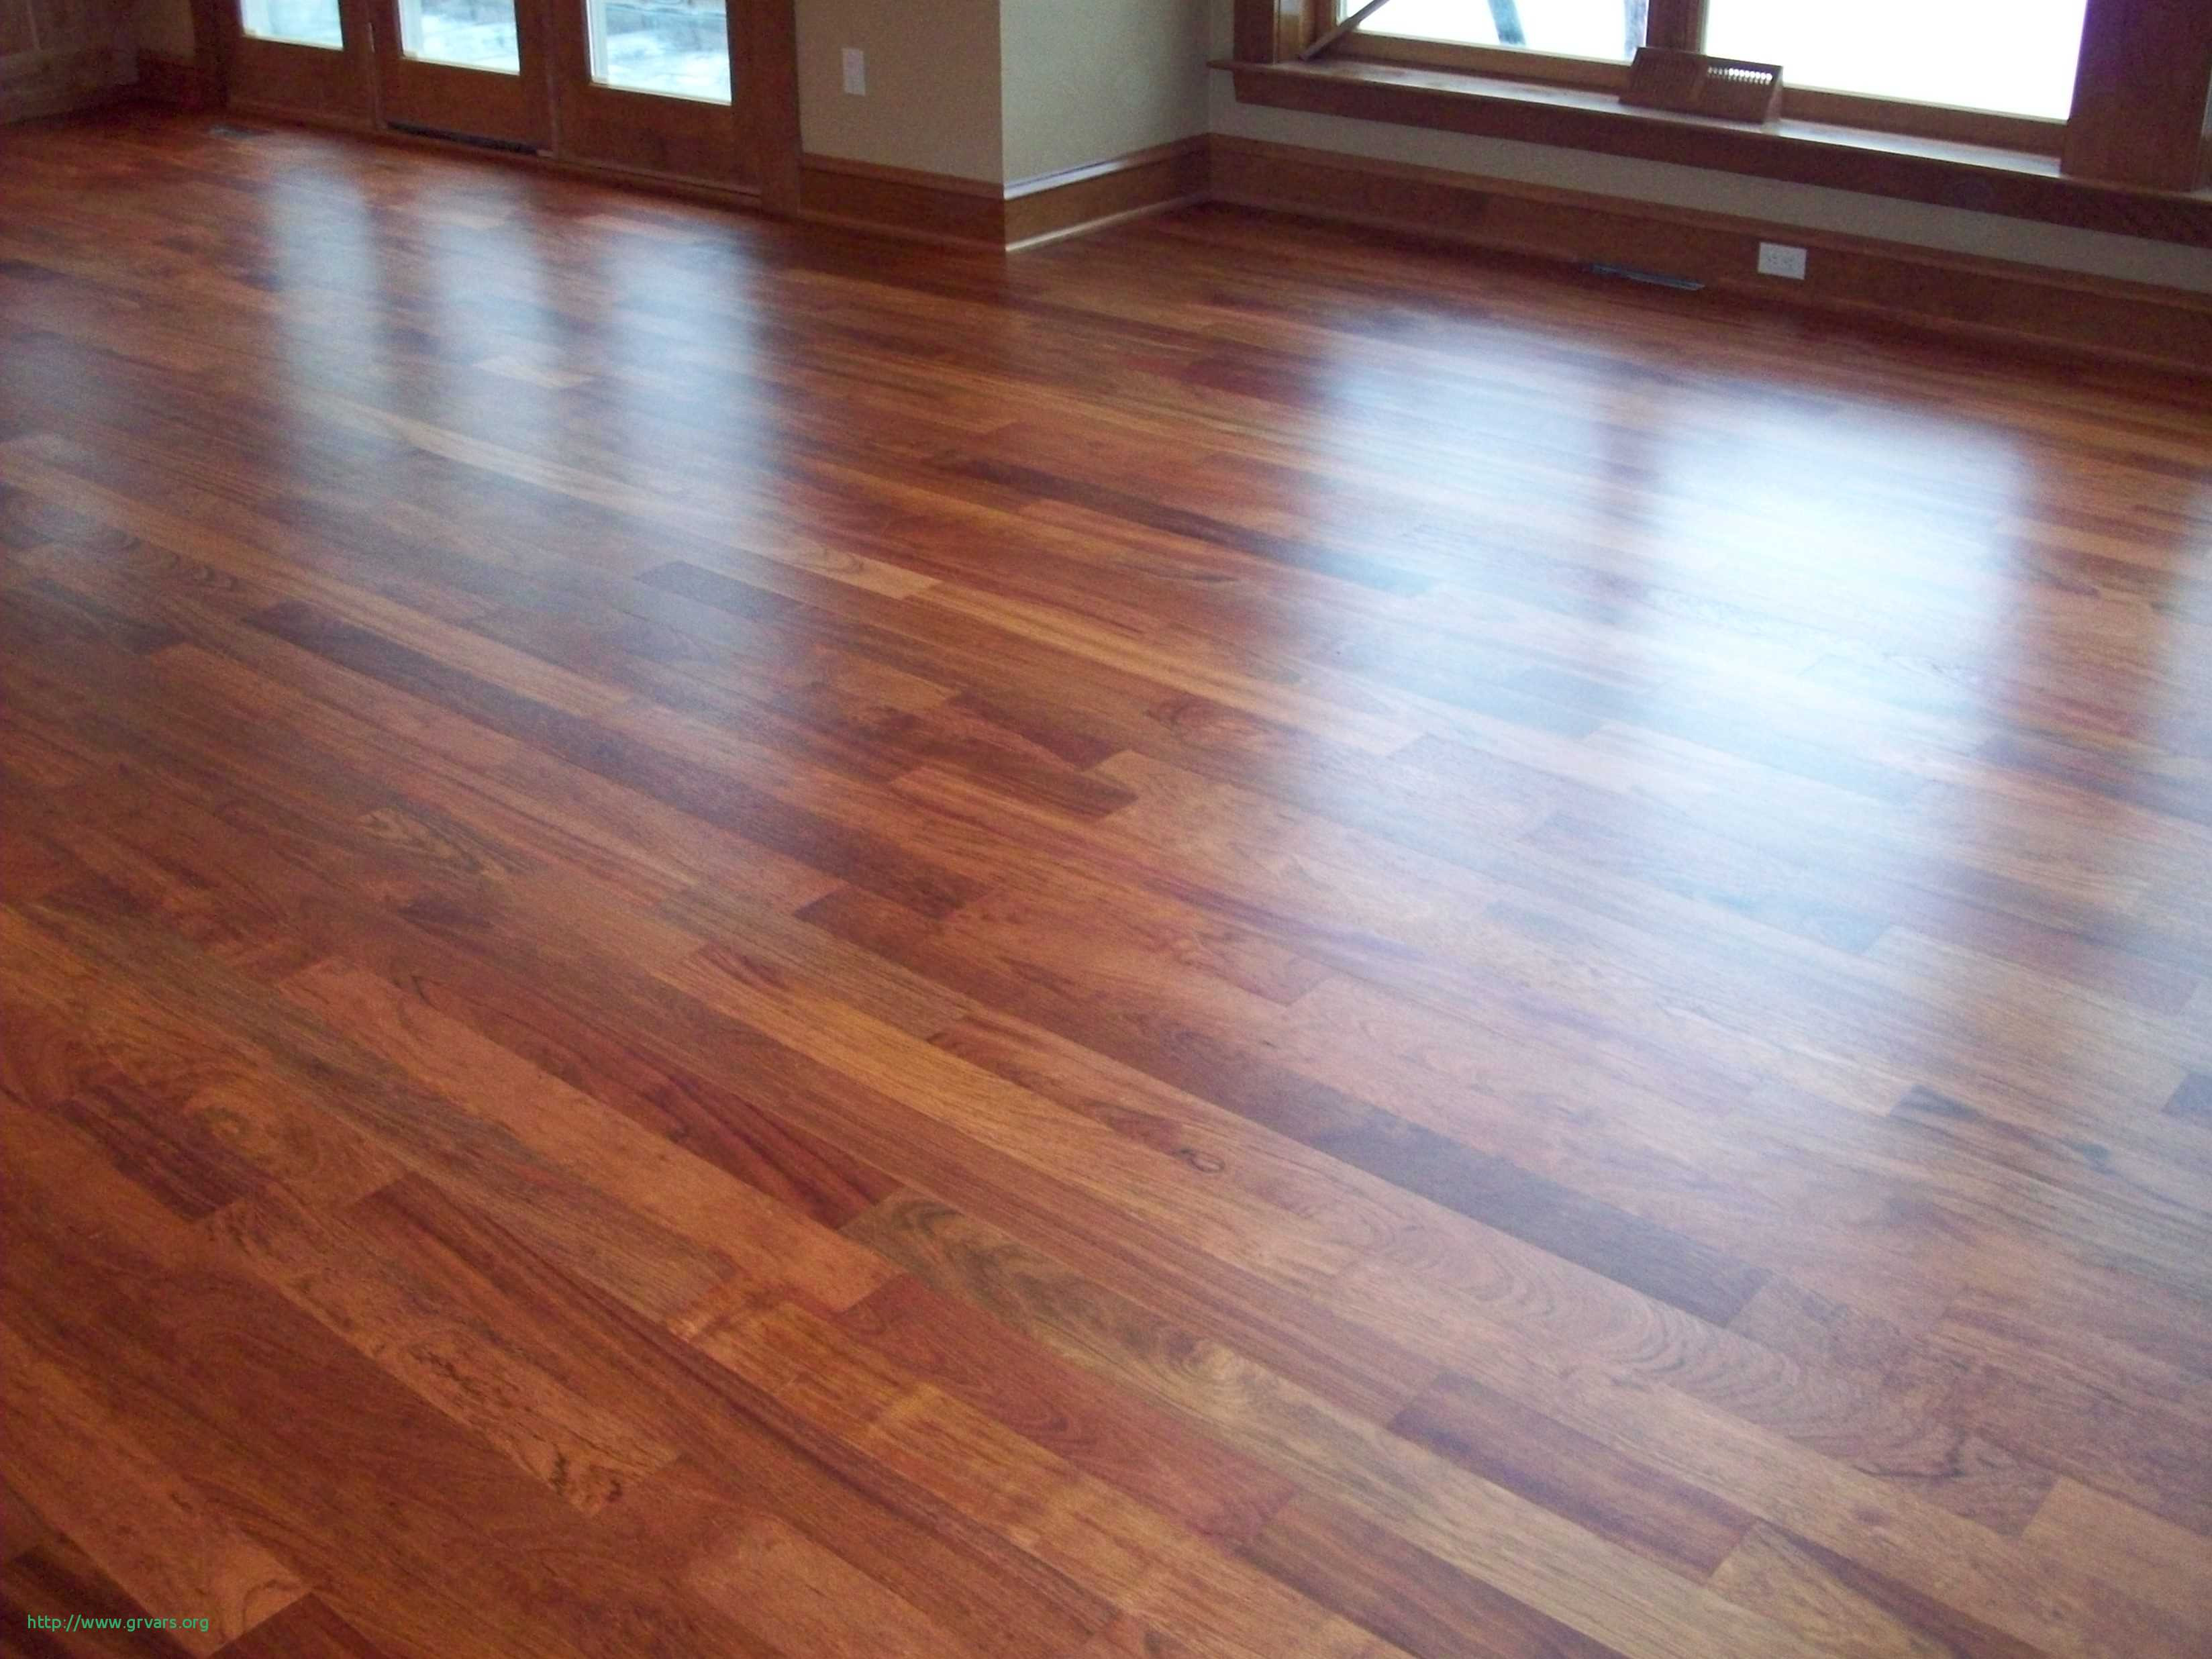 buy direct hardwood flooring of buy floors direct nashville charmant engaging discount hardwood with regard to buy floors direct nashville charmant engaging discount hardwood flooring 5 where to buy inspirational 0d